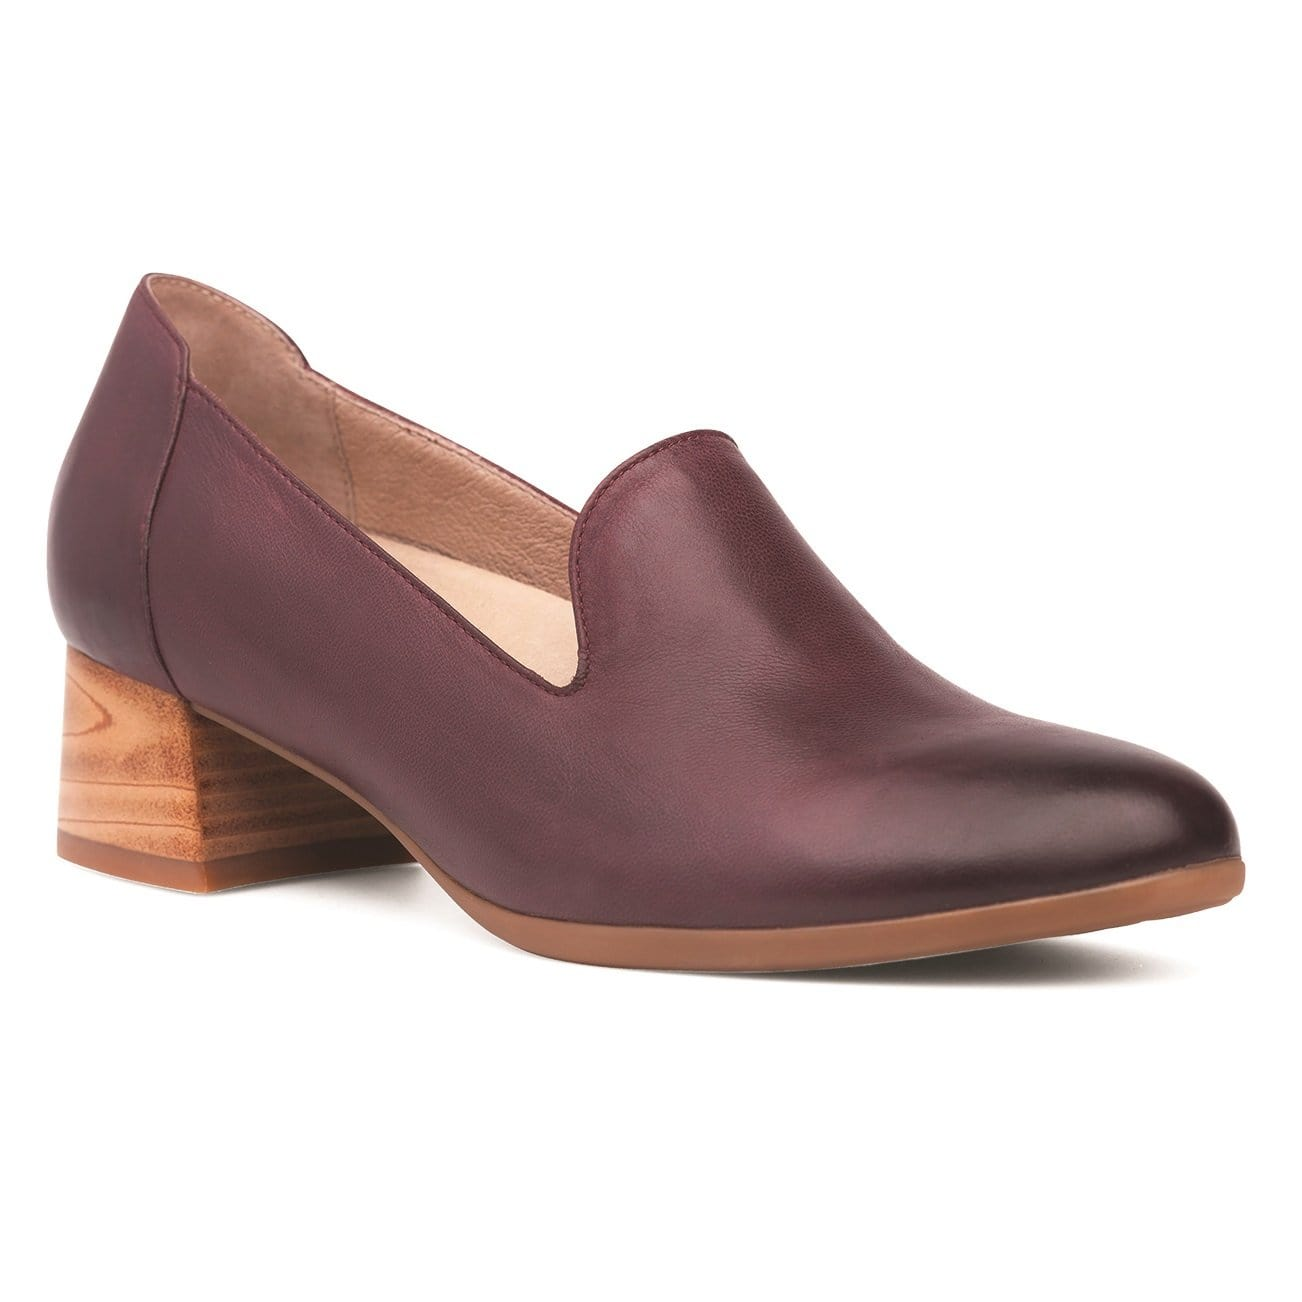 Dansko Preston | Women's Leather High Vamp Heeled Loafer Shoe | Simons